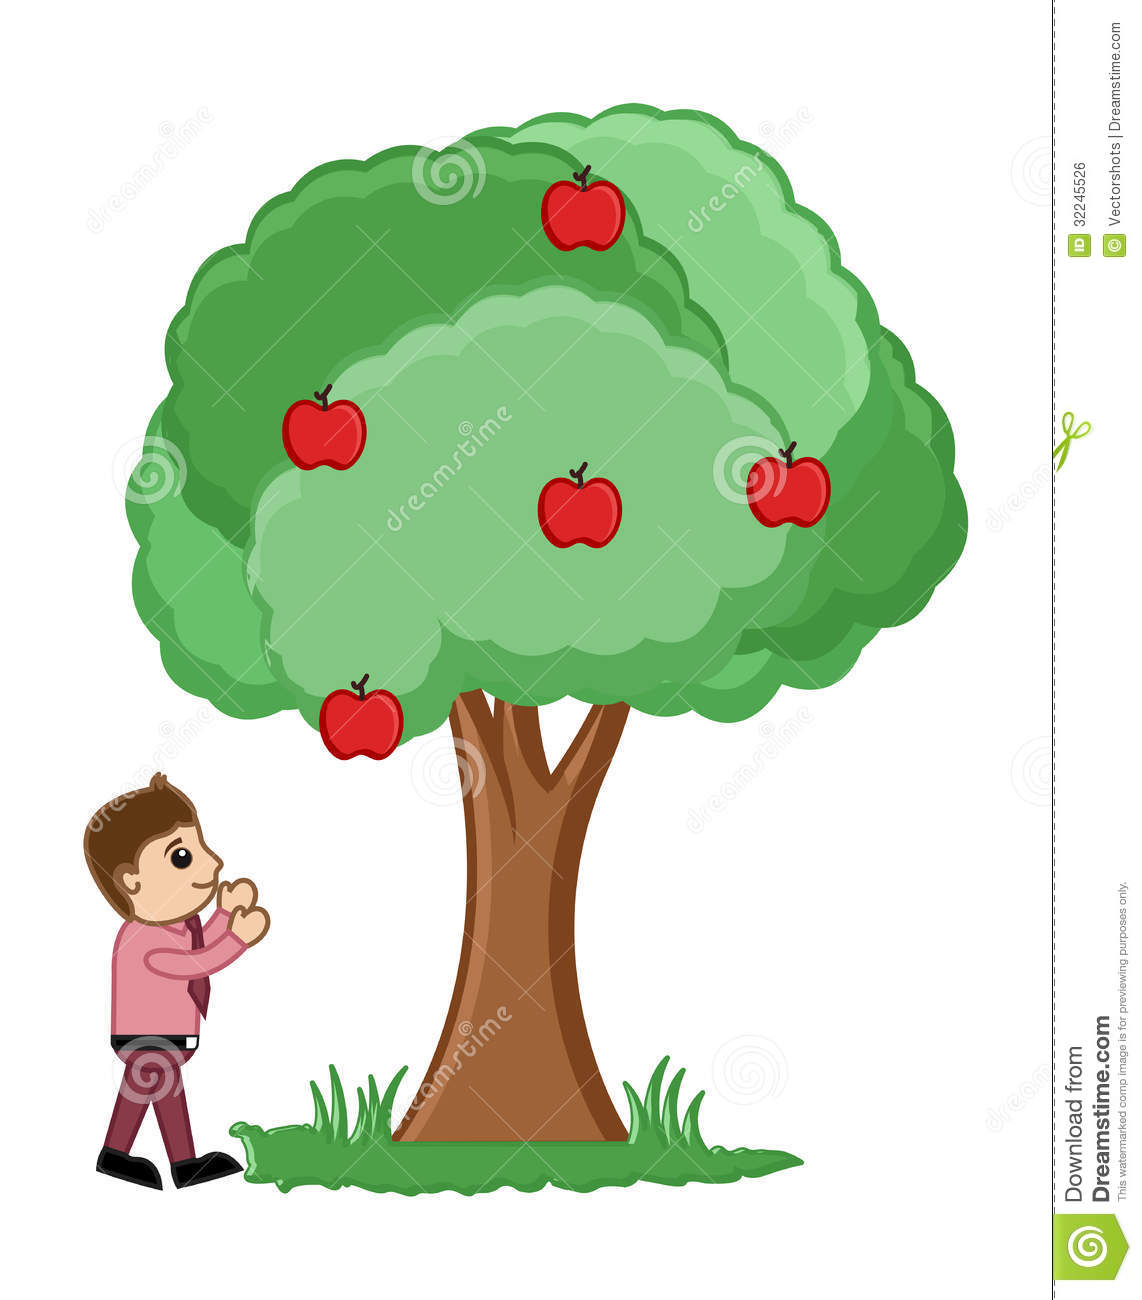 ... Hungry Man Trying to Catch Some Apples from Tree Vector Illustration